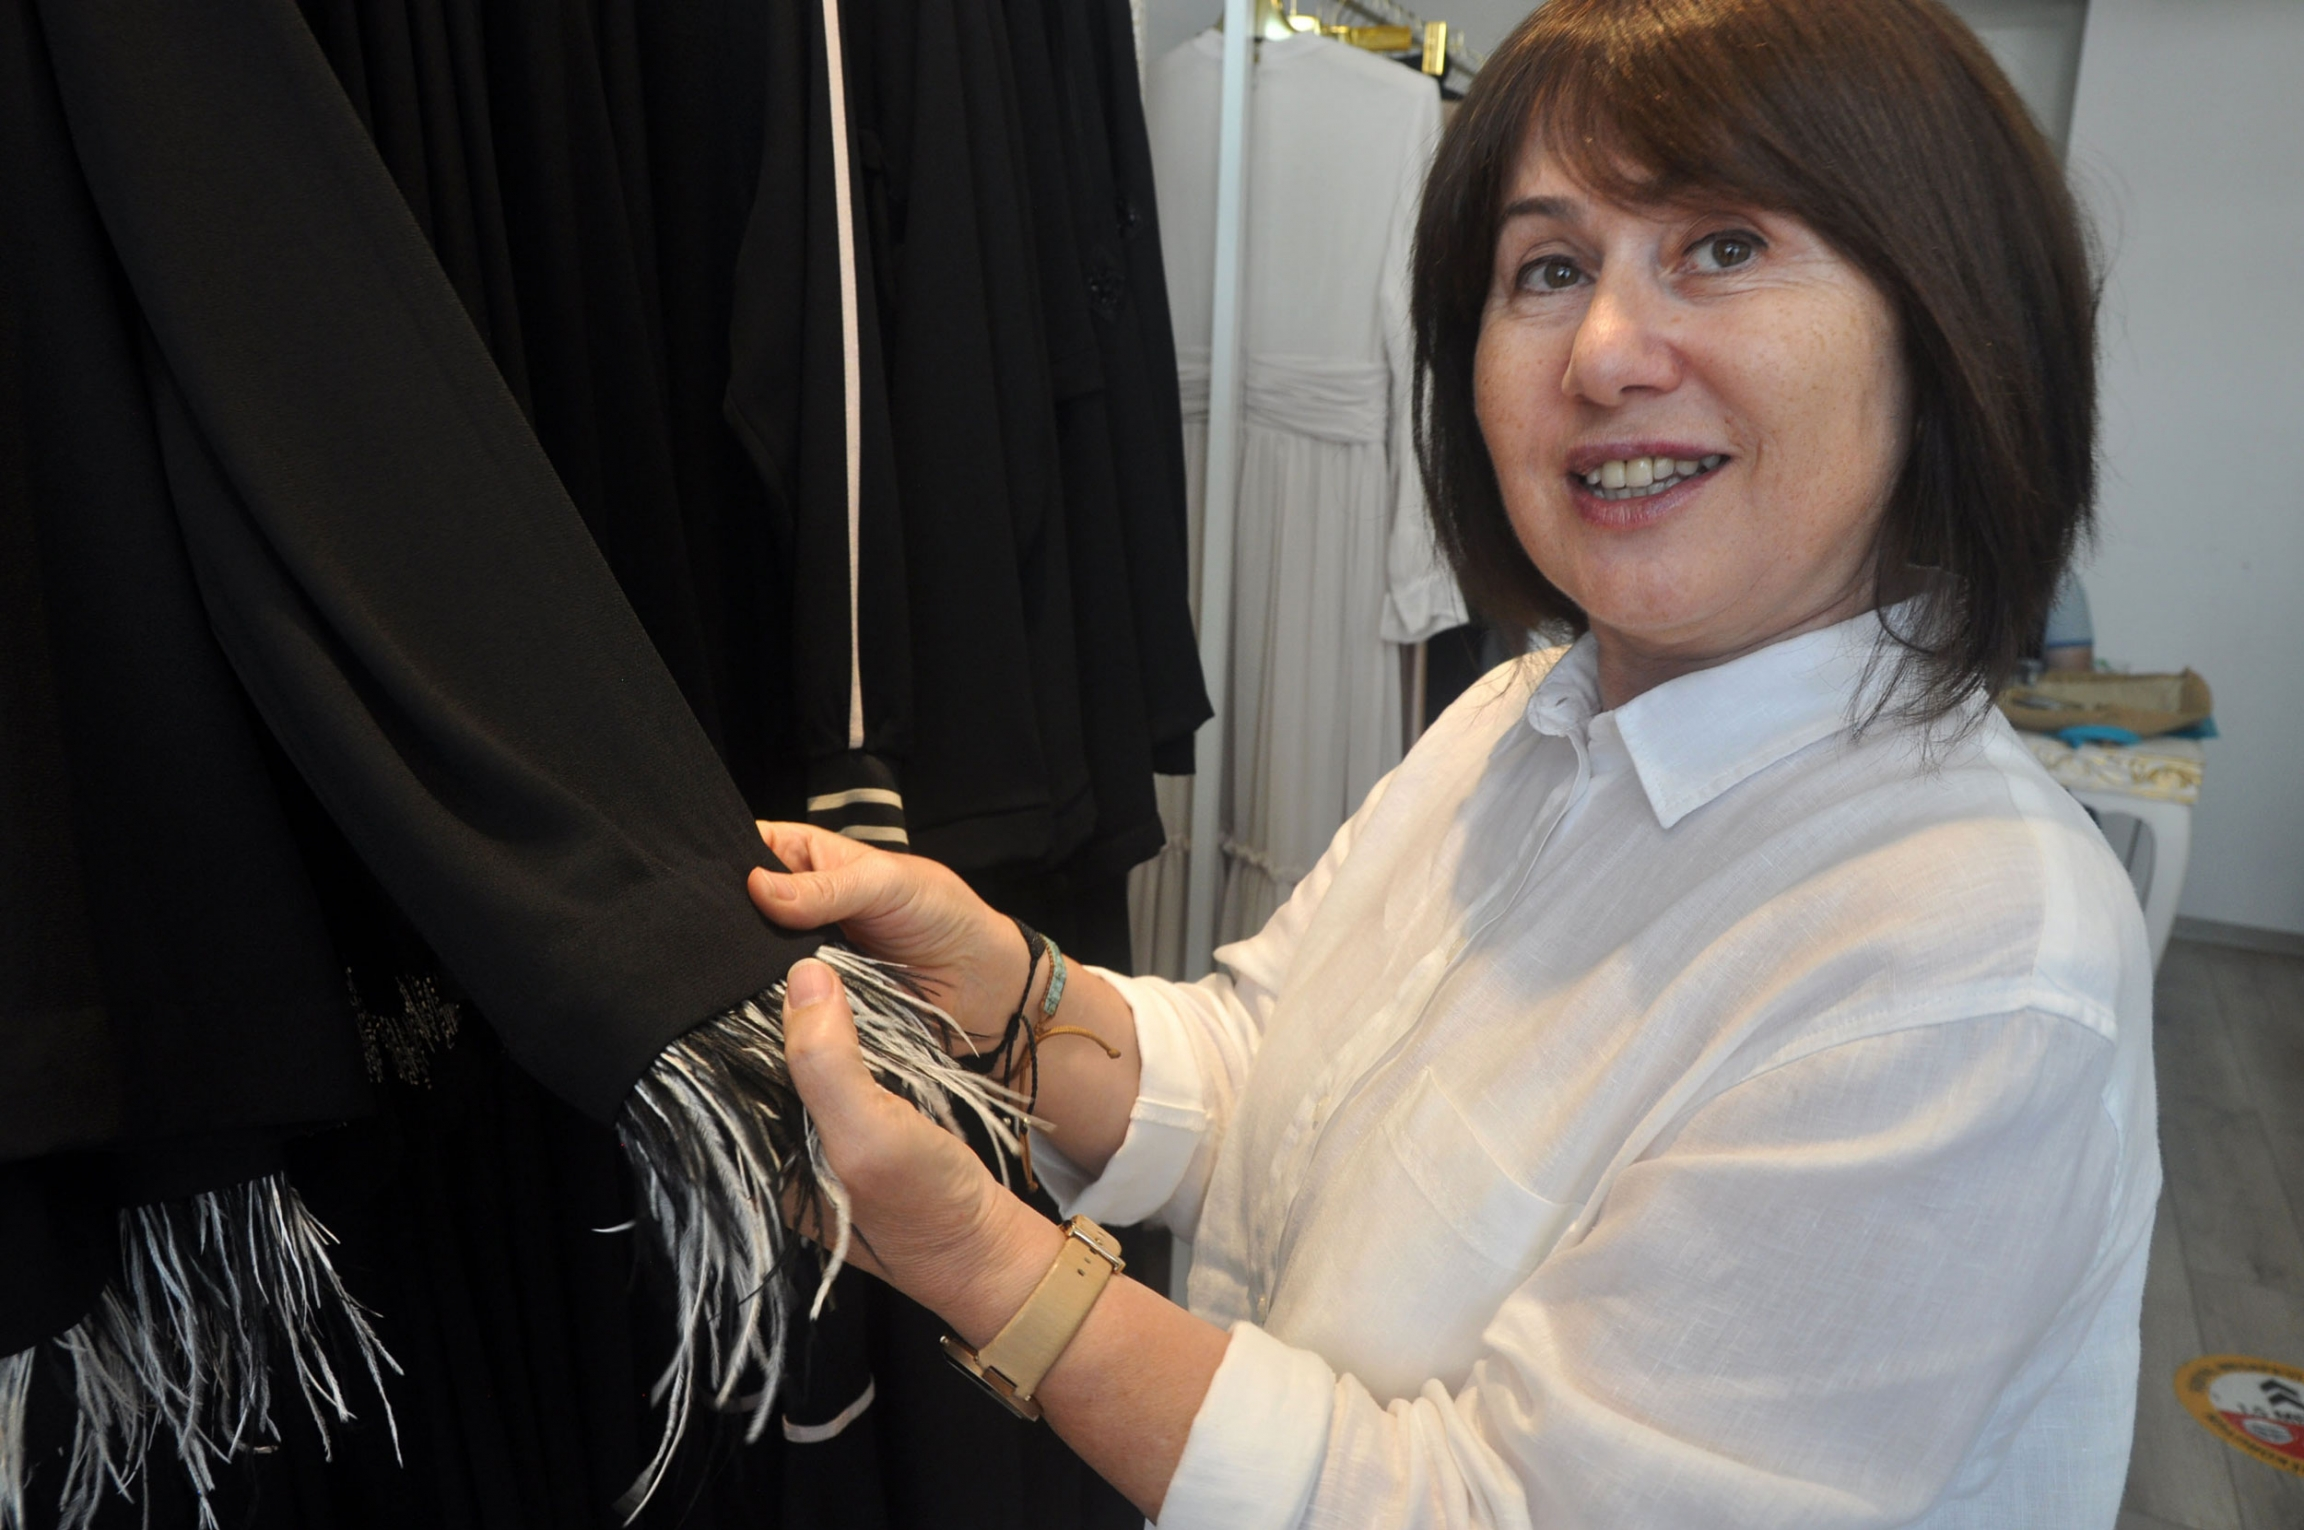 Ayşe Yıldırım explains a detail on one of her designs: a feathered, removable cuff.